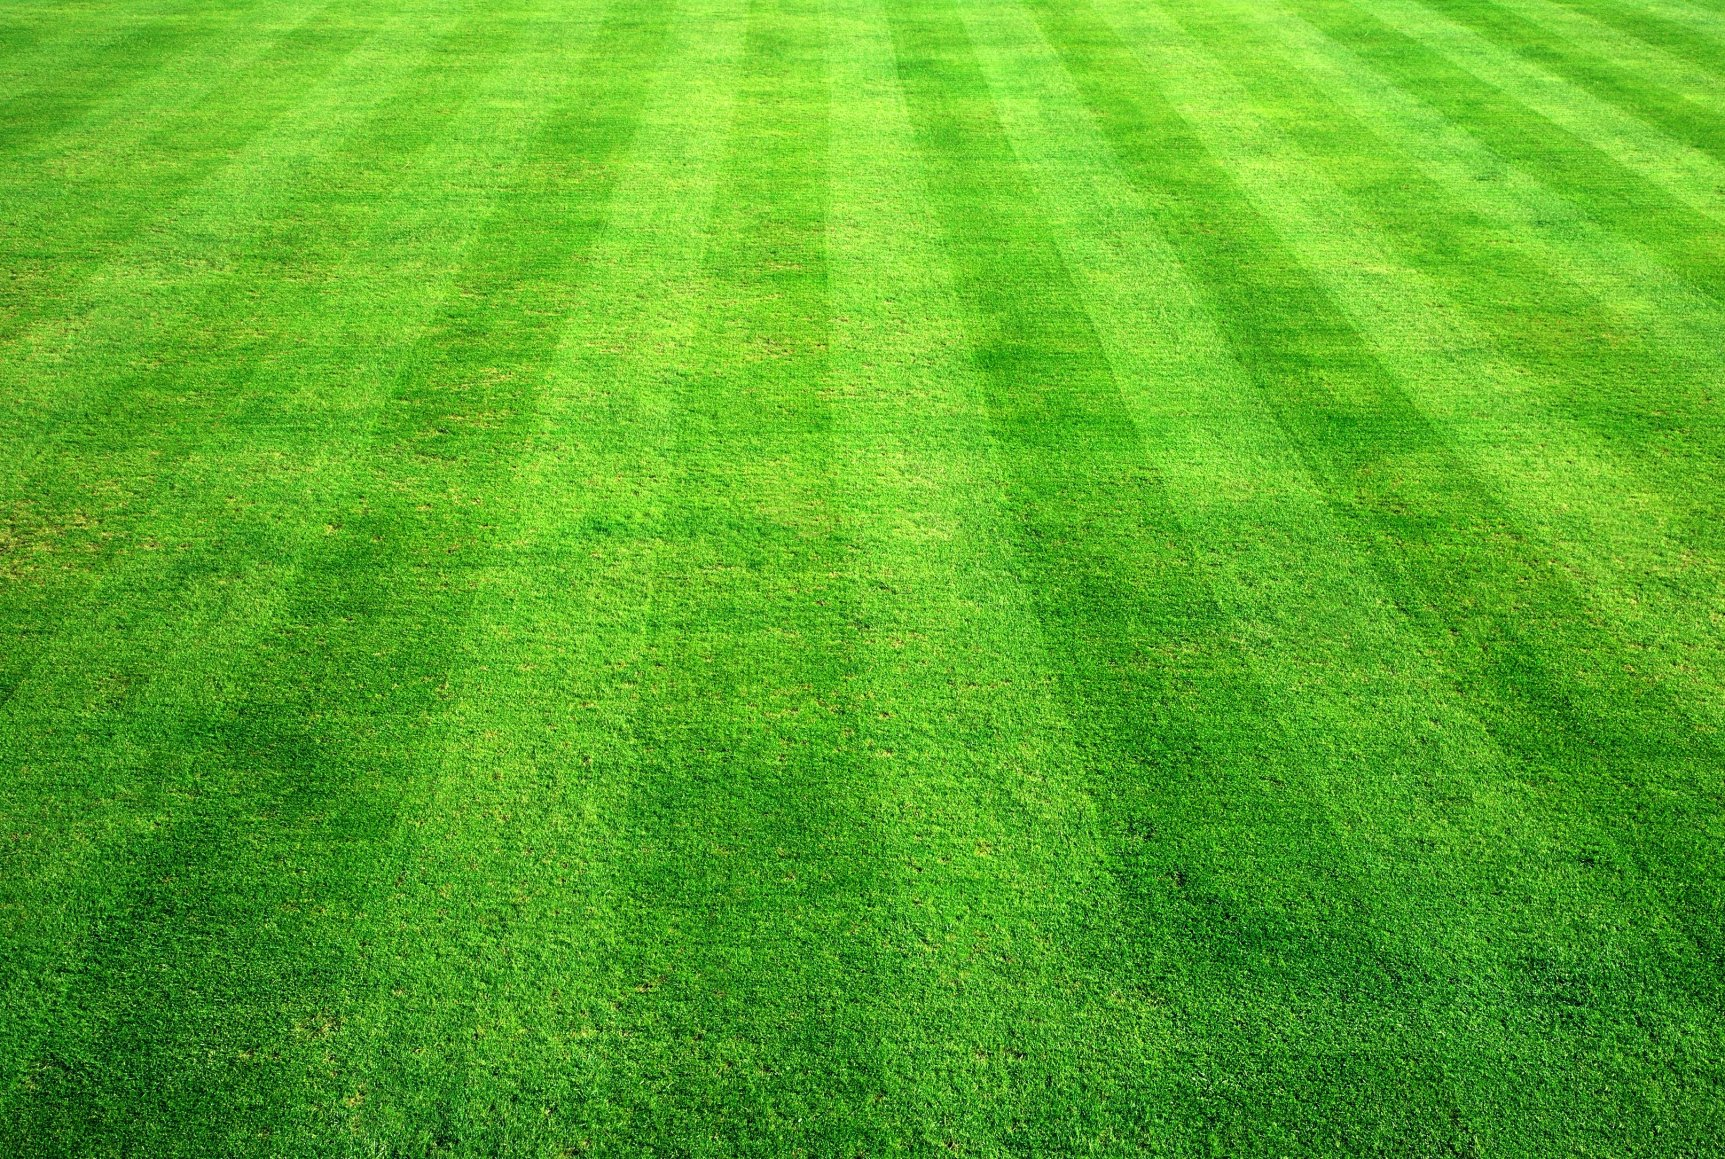 Bowling green grass background. - Stone Age Landscaping